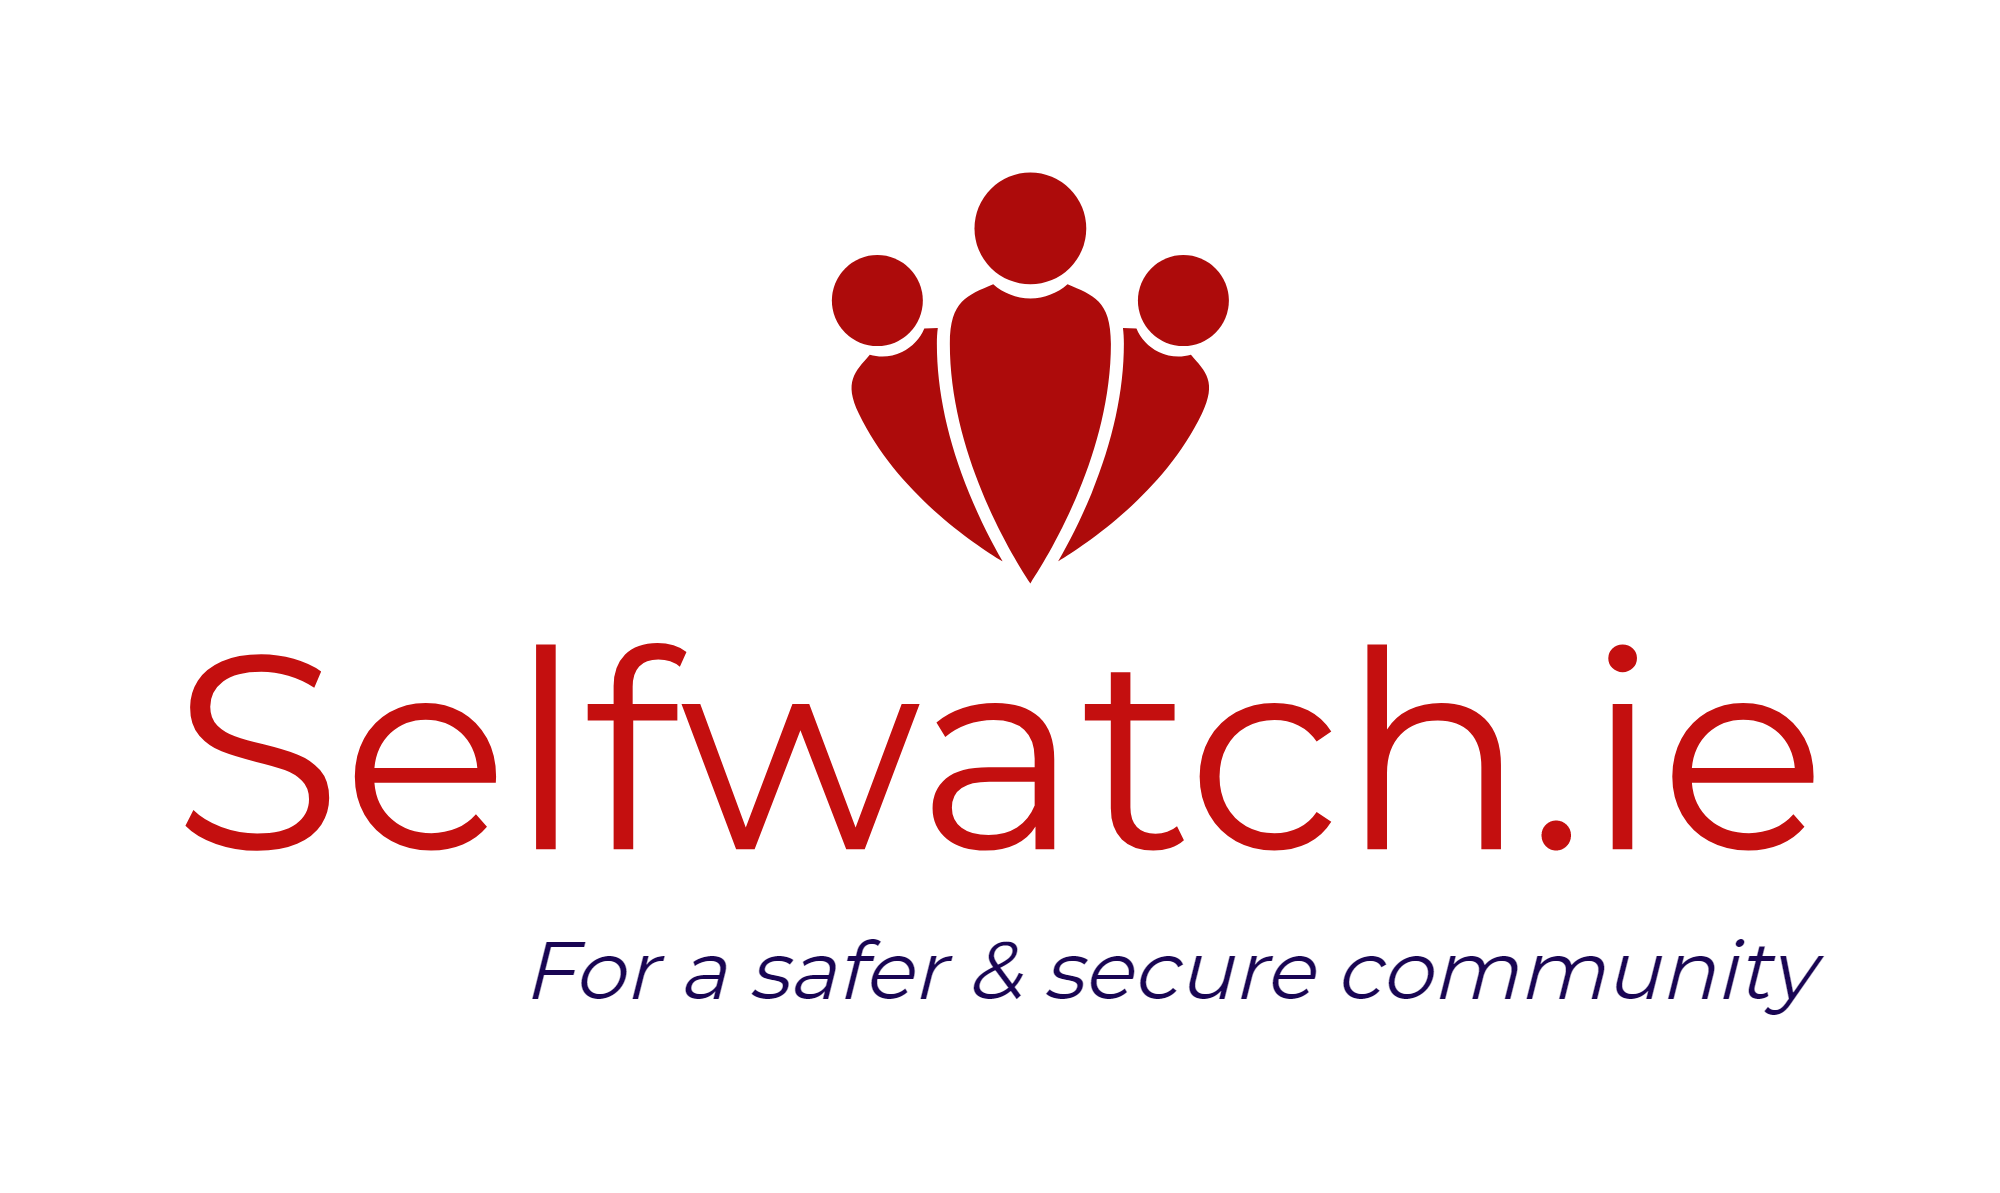 Selfwatch.ie-logo (1).png